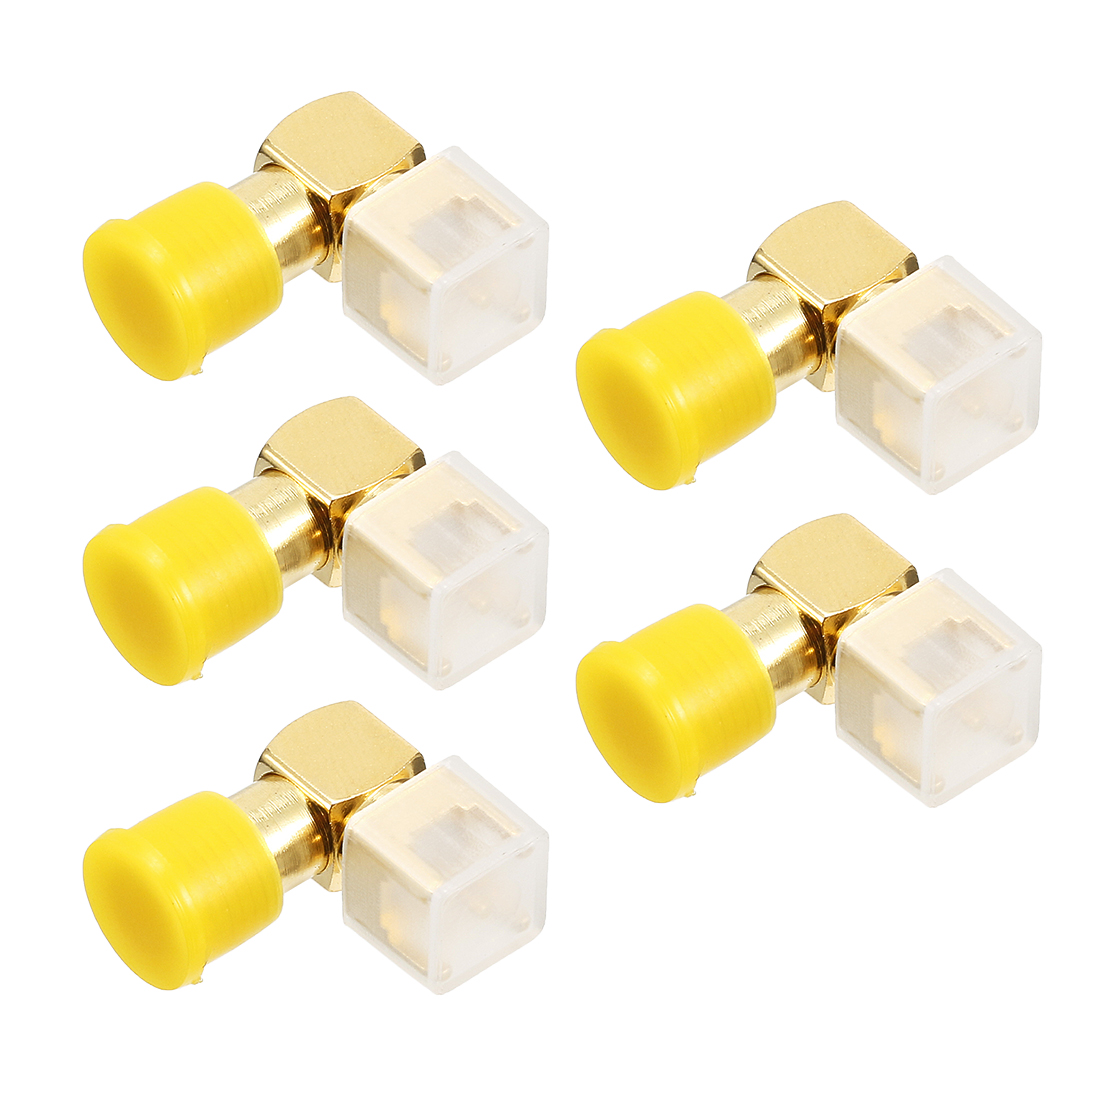 5pcs Gold Tone Right-angle SMA PCB Female Jack RF Coaxial Adapter Connector